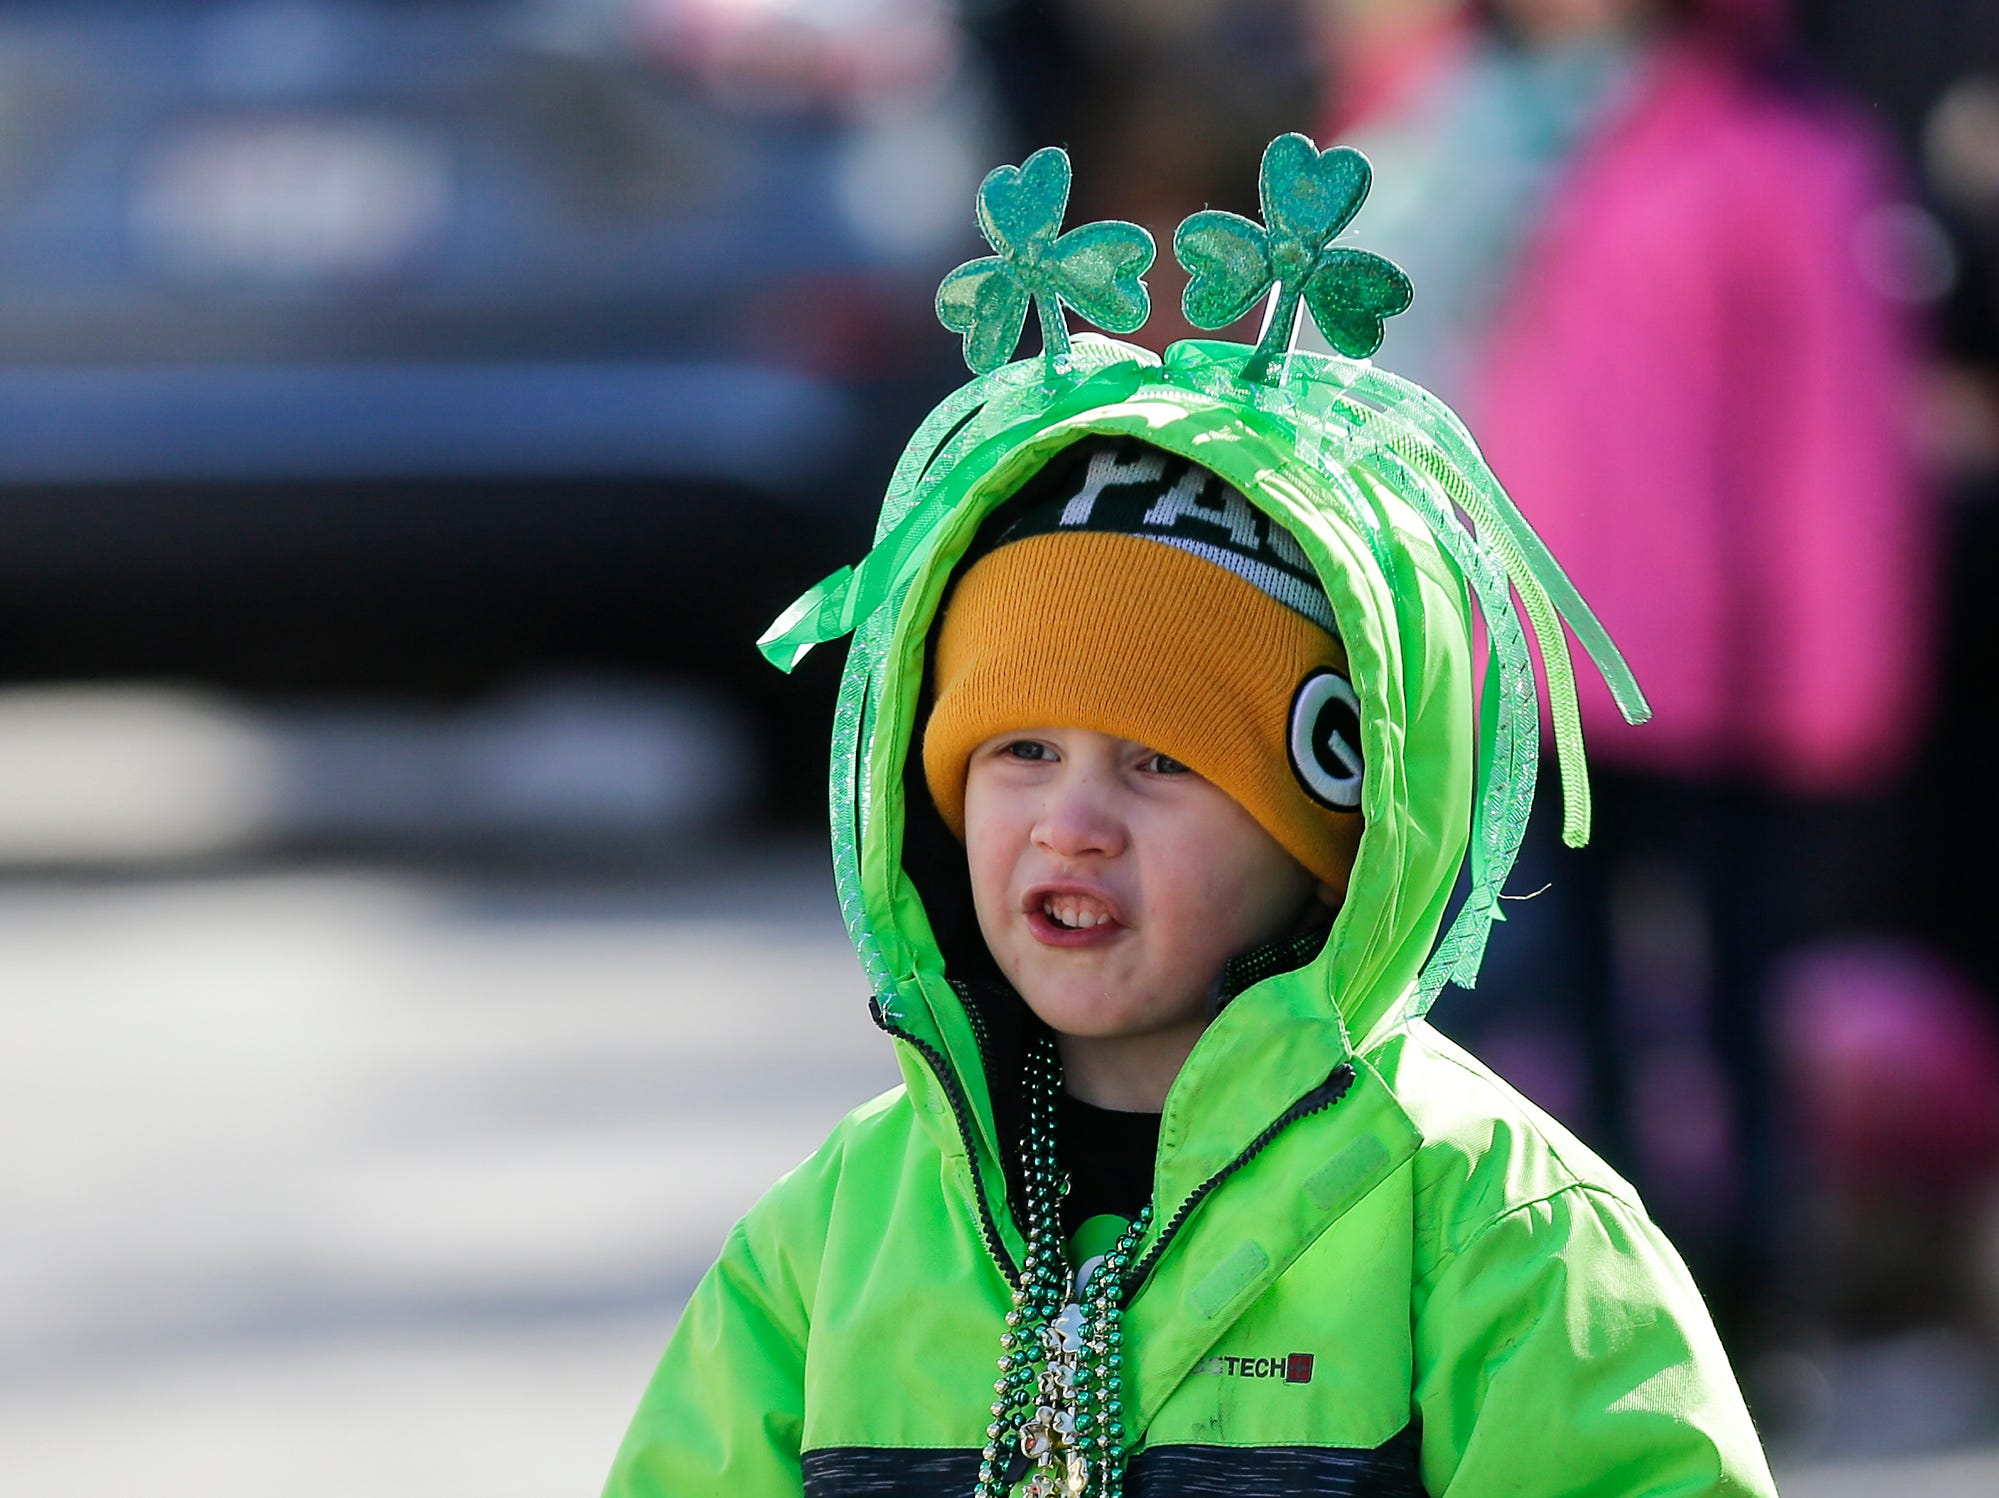 Gabe Holden waits for candy to be thrown during the City of Fond du Lac St. Patrick's Day Parade Saturday, March 16, 2019 on Main Street in downtown Fond du Lac. Hundreds of people lined the street to watch over 50 parade participants. Doug Raflik/USA TODAY NETWORK-Wisconsin